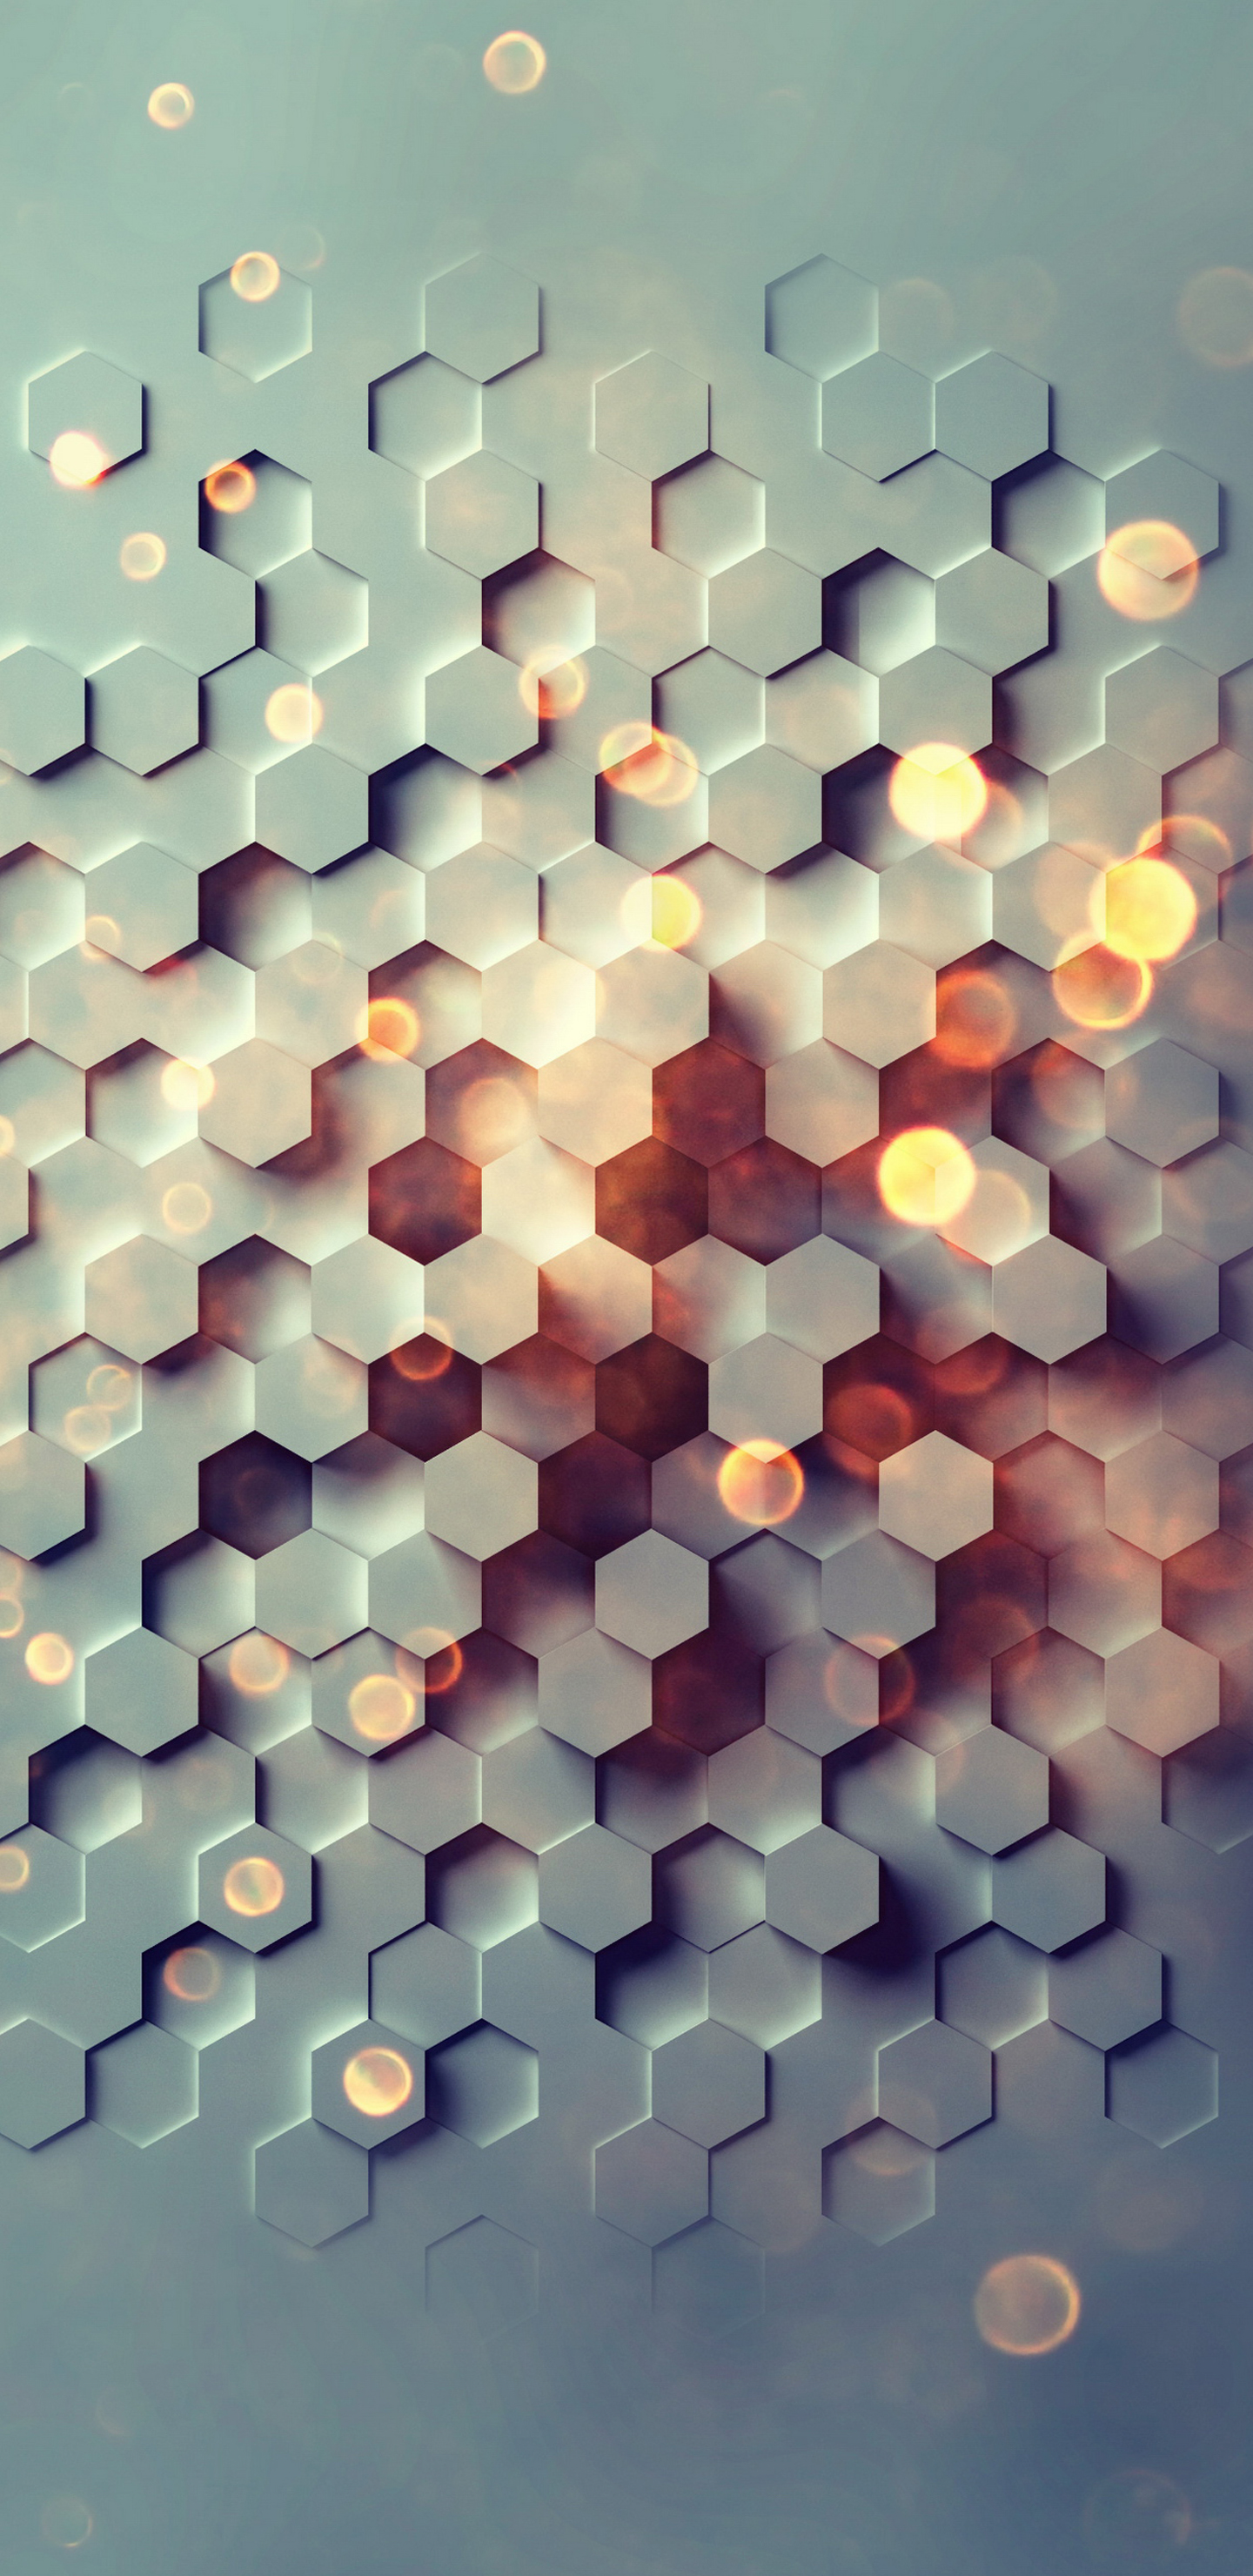 3d hexagon background for samsung galaxy note 8 wallpaper - Samsung galaxy note 8 hd wallpaper ...